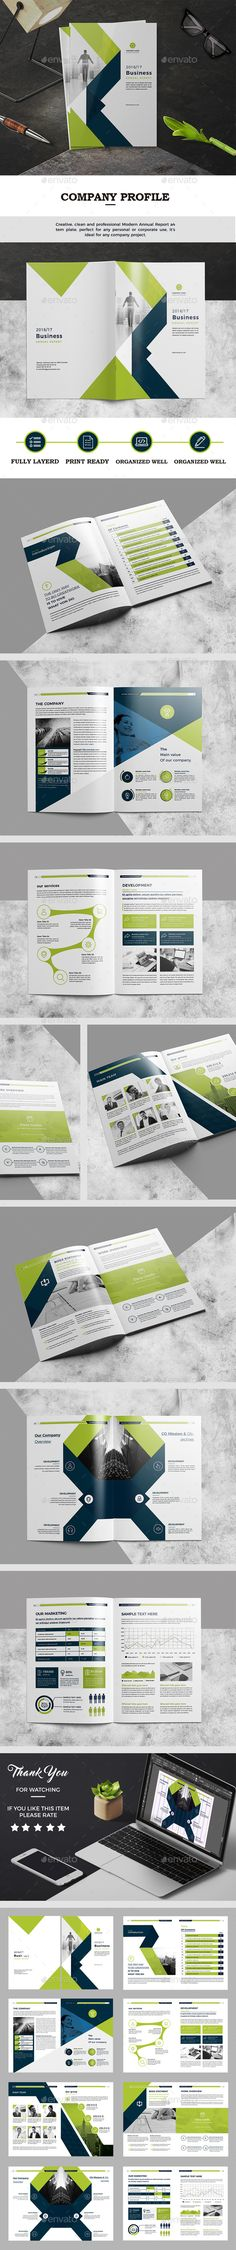 58 best business brochure images on pinterest brochure template business plan accmission